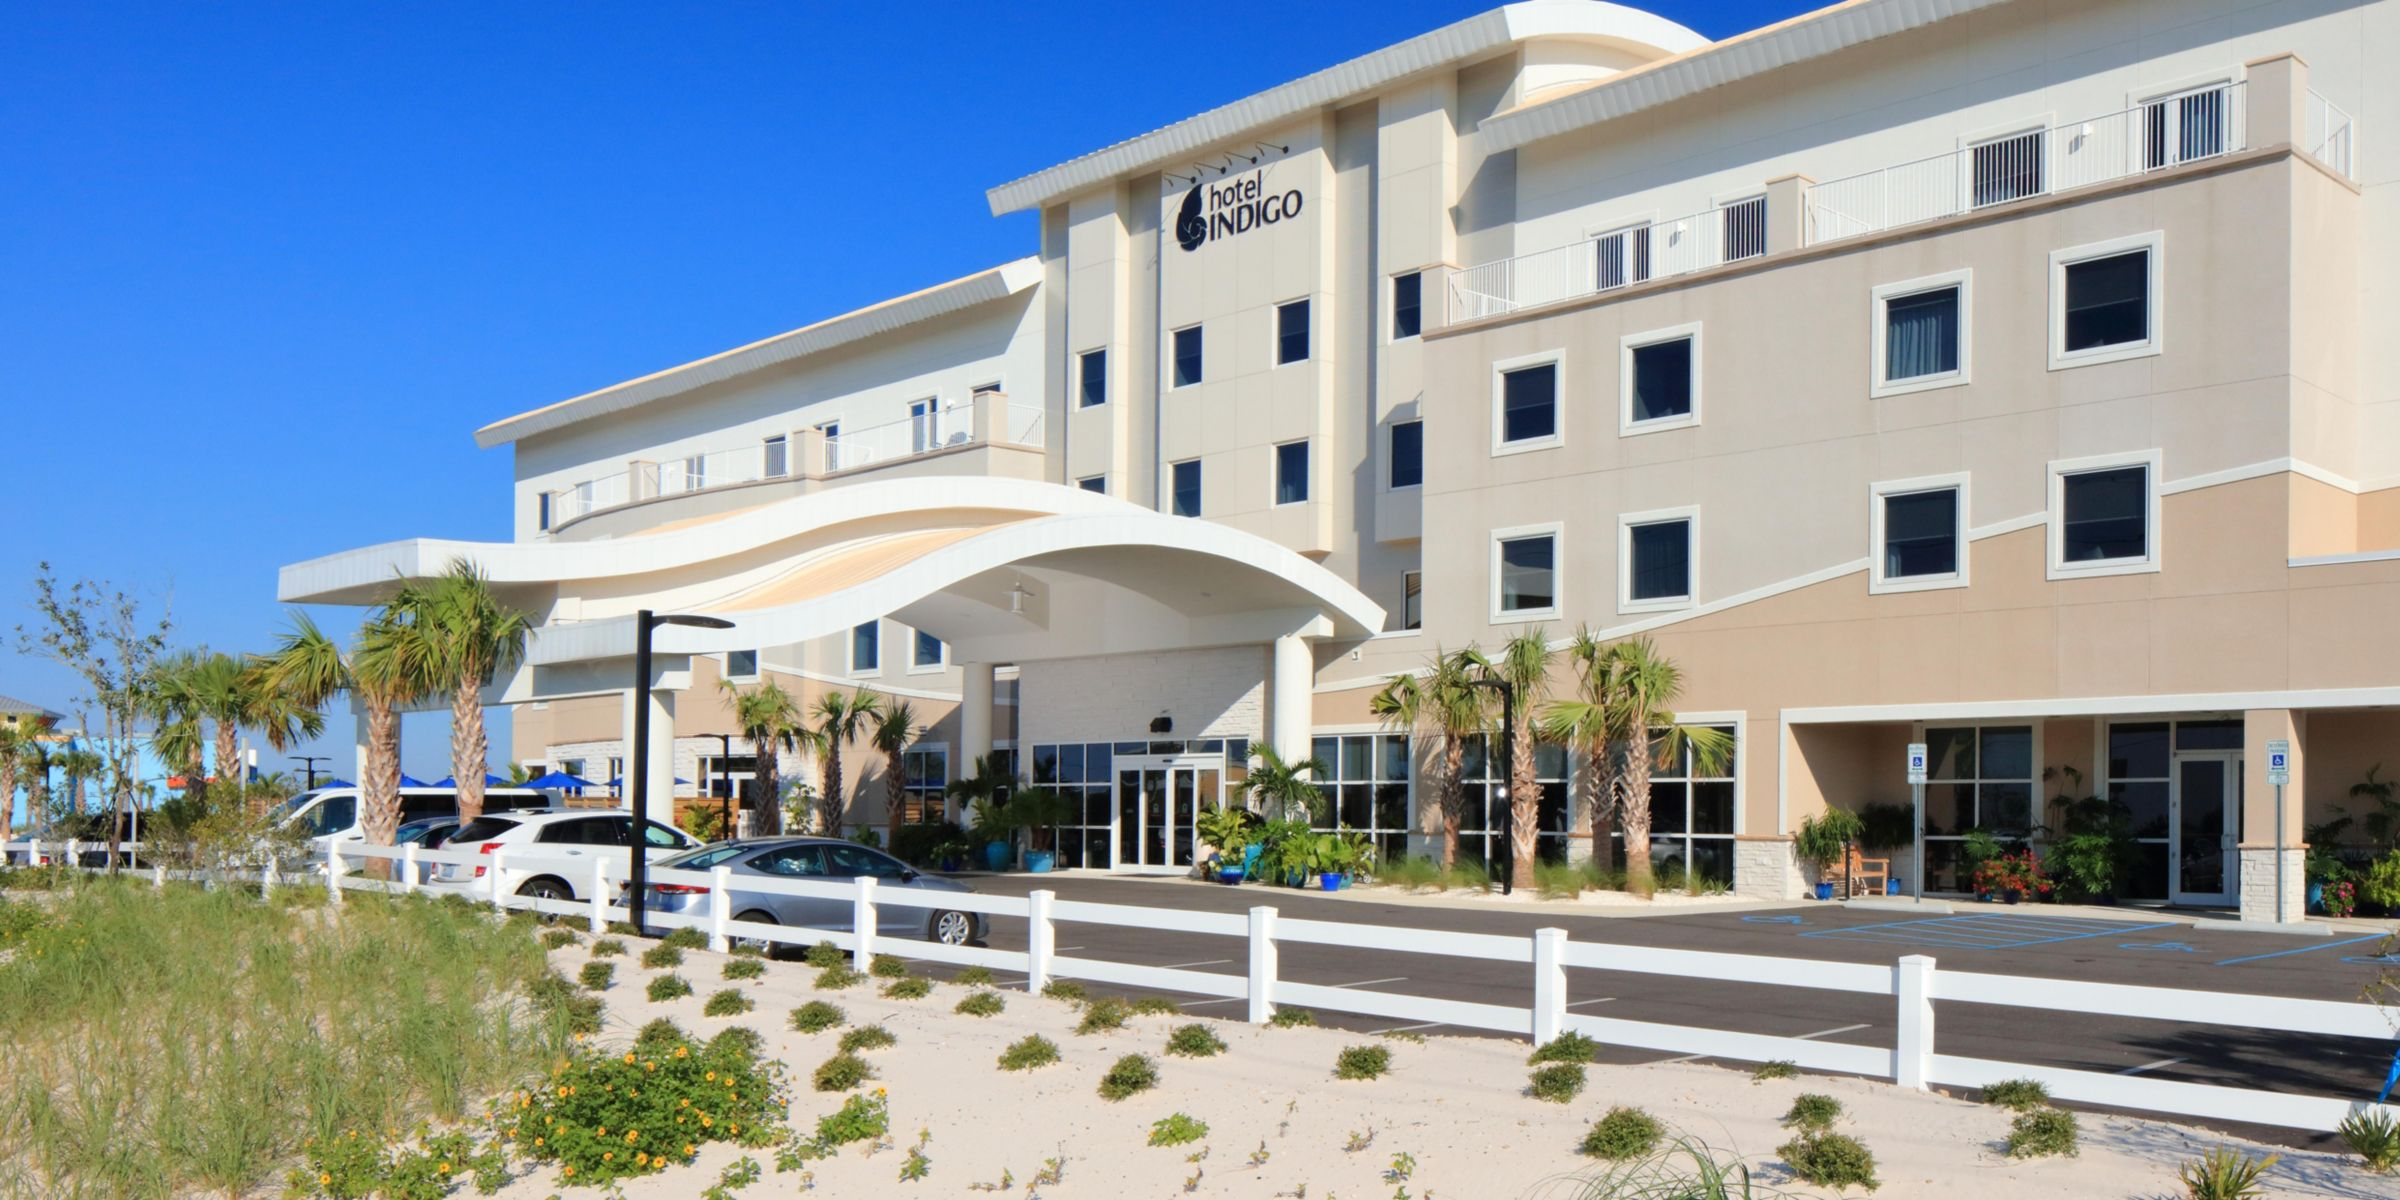 Hotel Indigo Orange Beach Gulf Ss